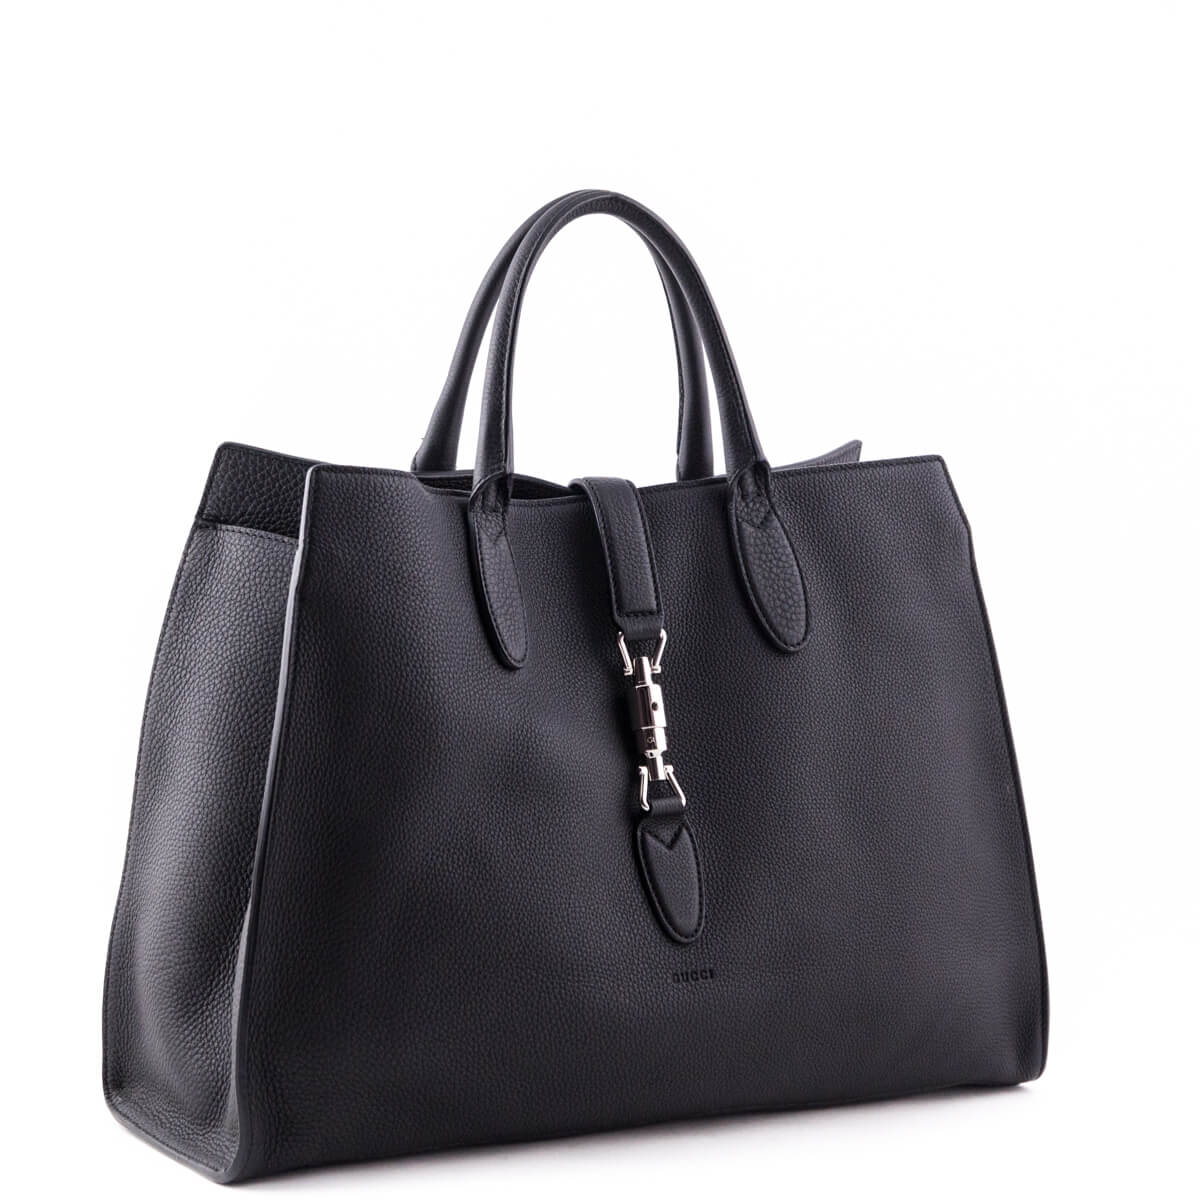 Discover on feet images of newest style of Gucci Black Soft Leather Large Jackie Top Handle Bag